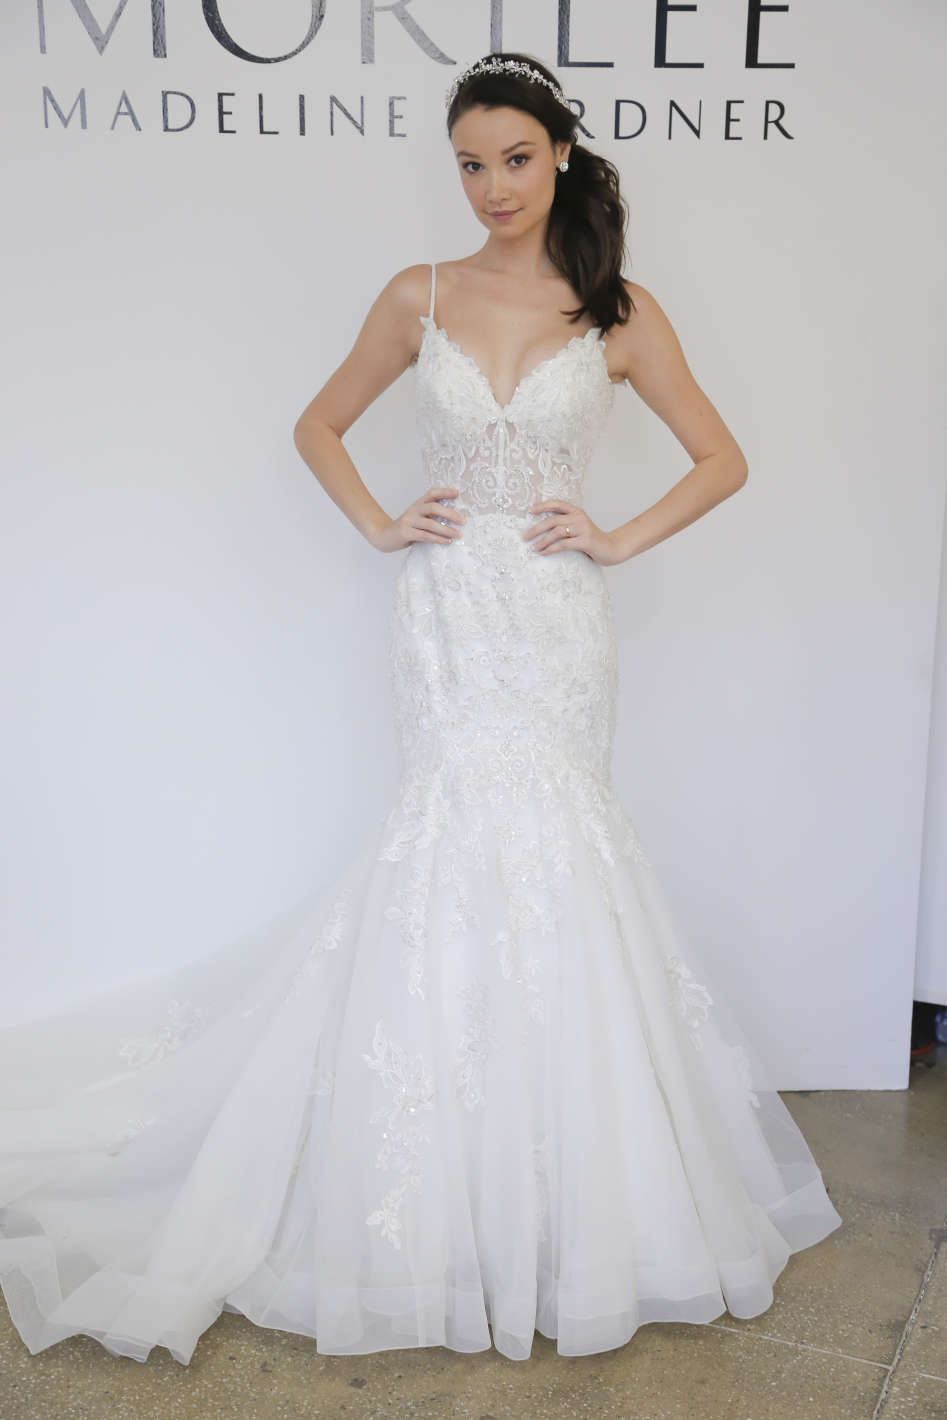 10 amazing wedding dresses in las vegas getting married for Wedding dresses for rent las vegas